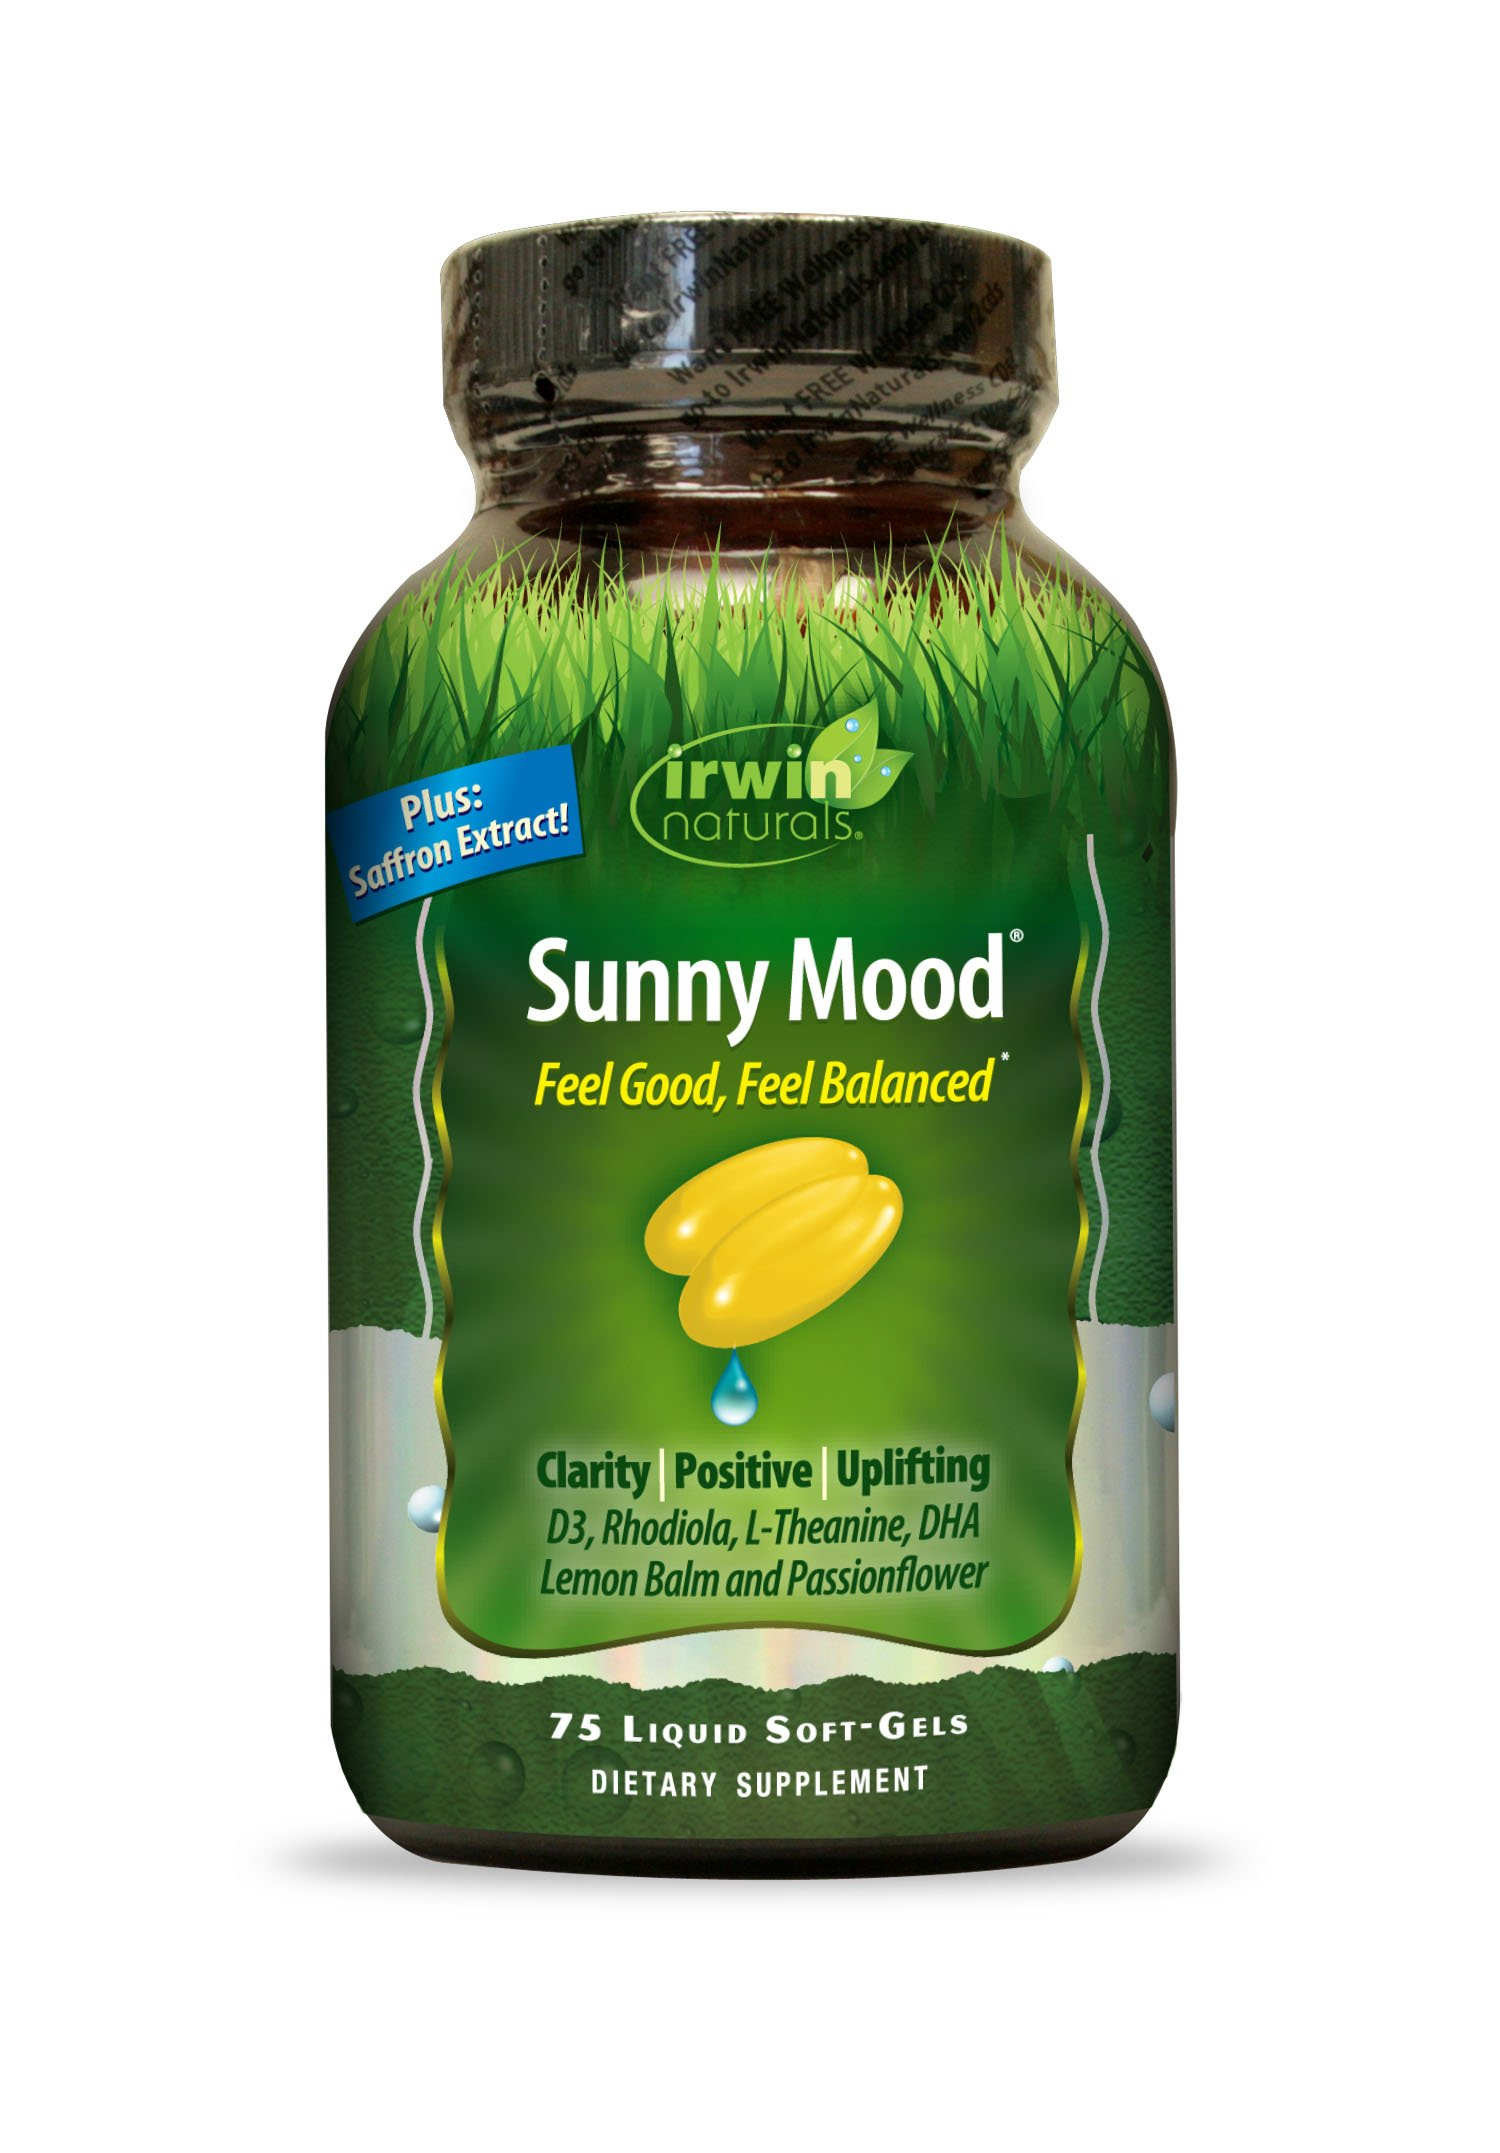 Sunny Mood by Irwin Naturals, Mood and Stress Support, 75 Liquid Soft-Gels